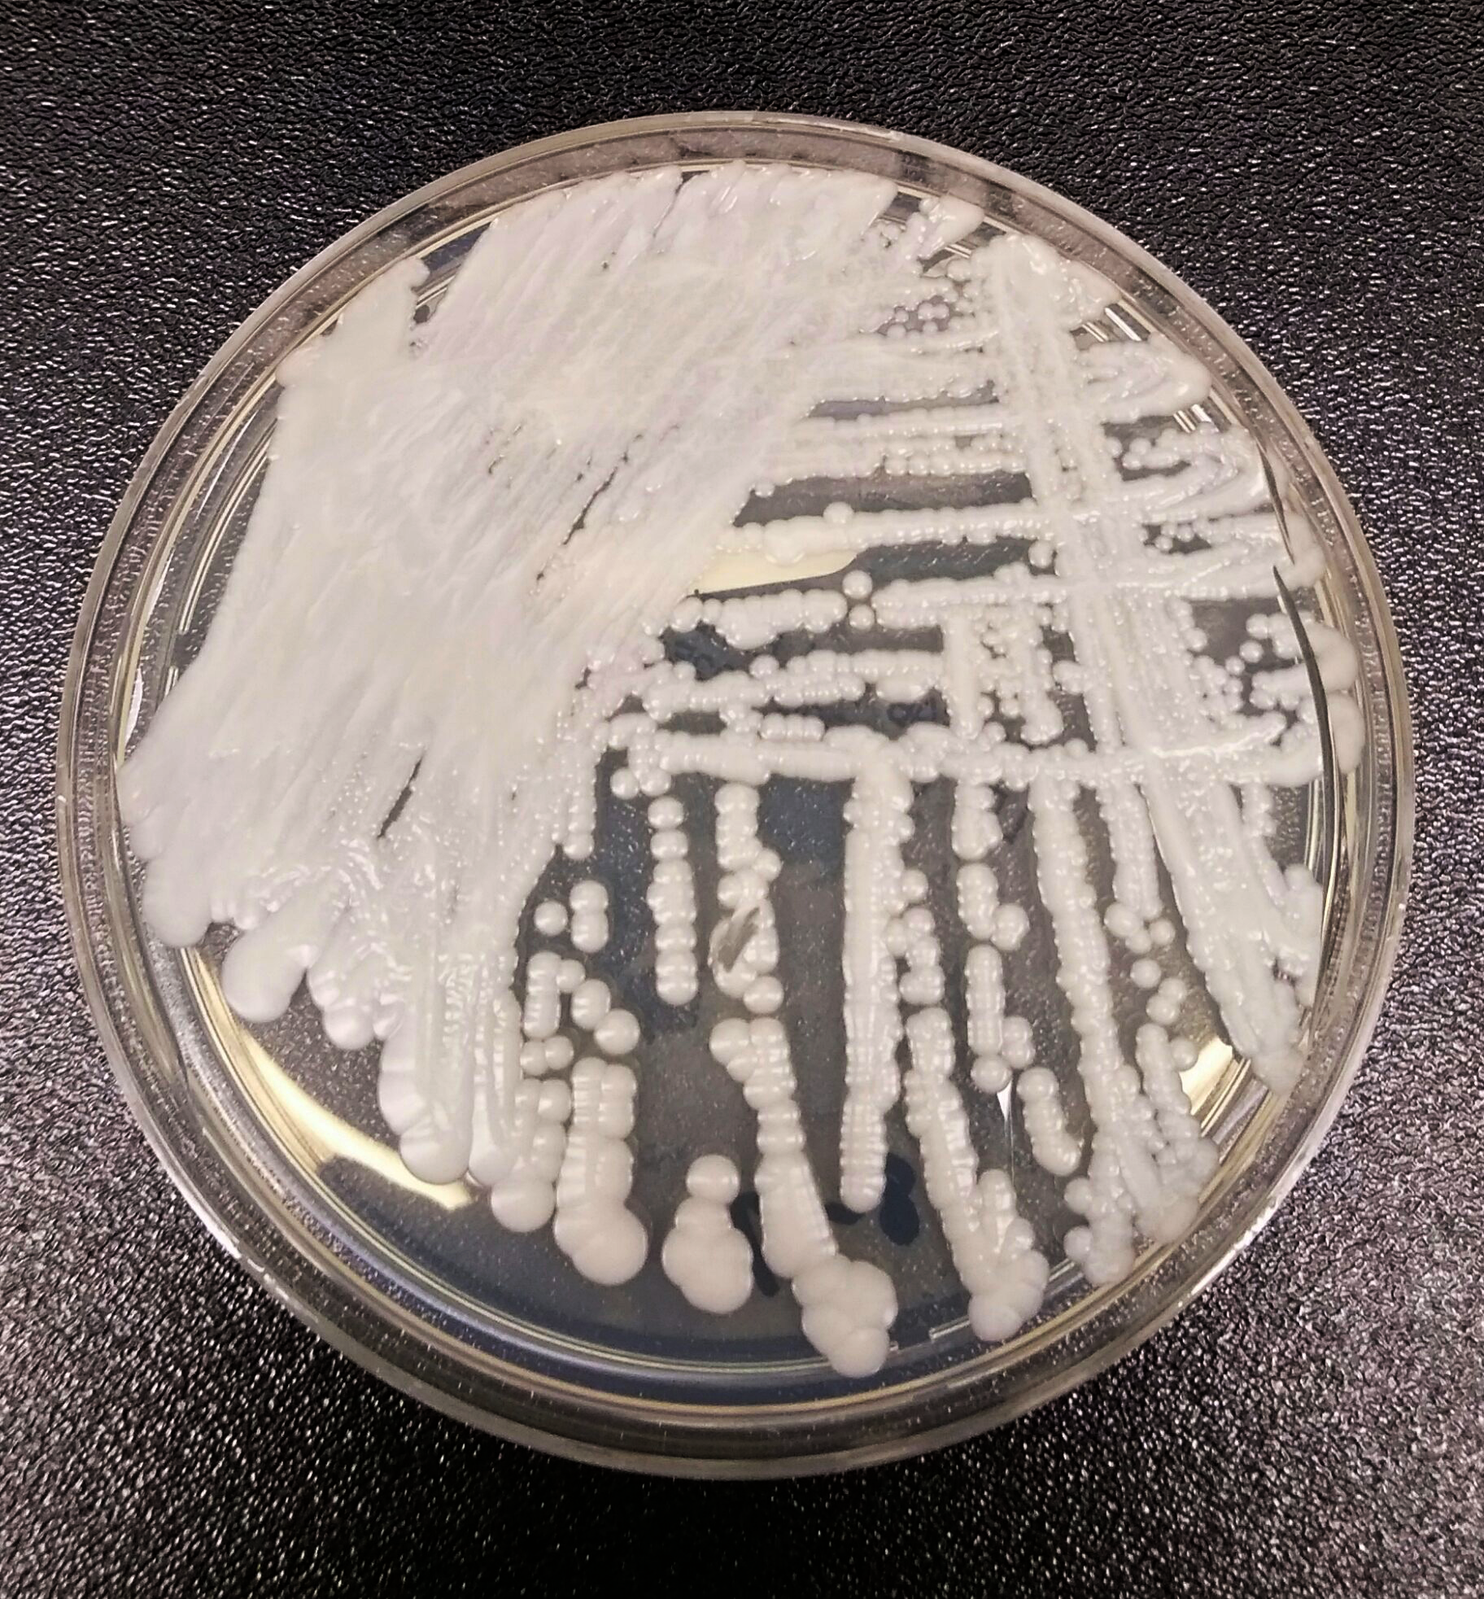 Climatic change may lead to Deadly fungal disease